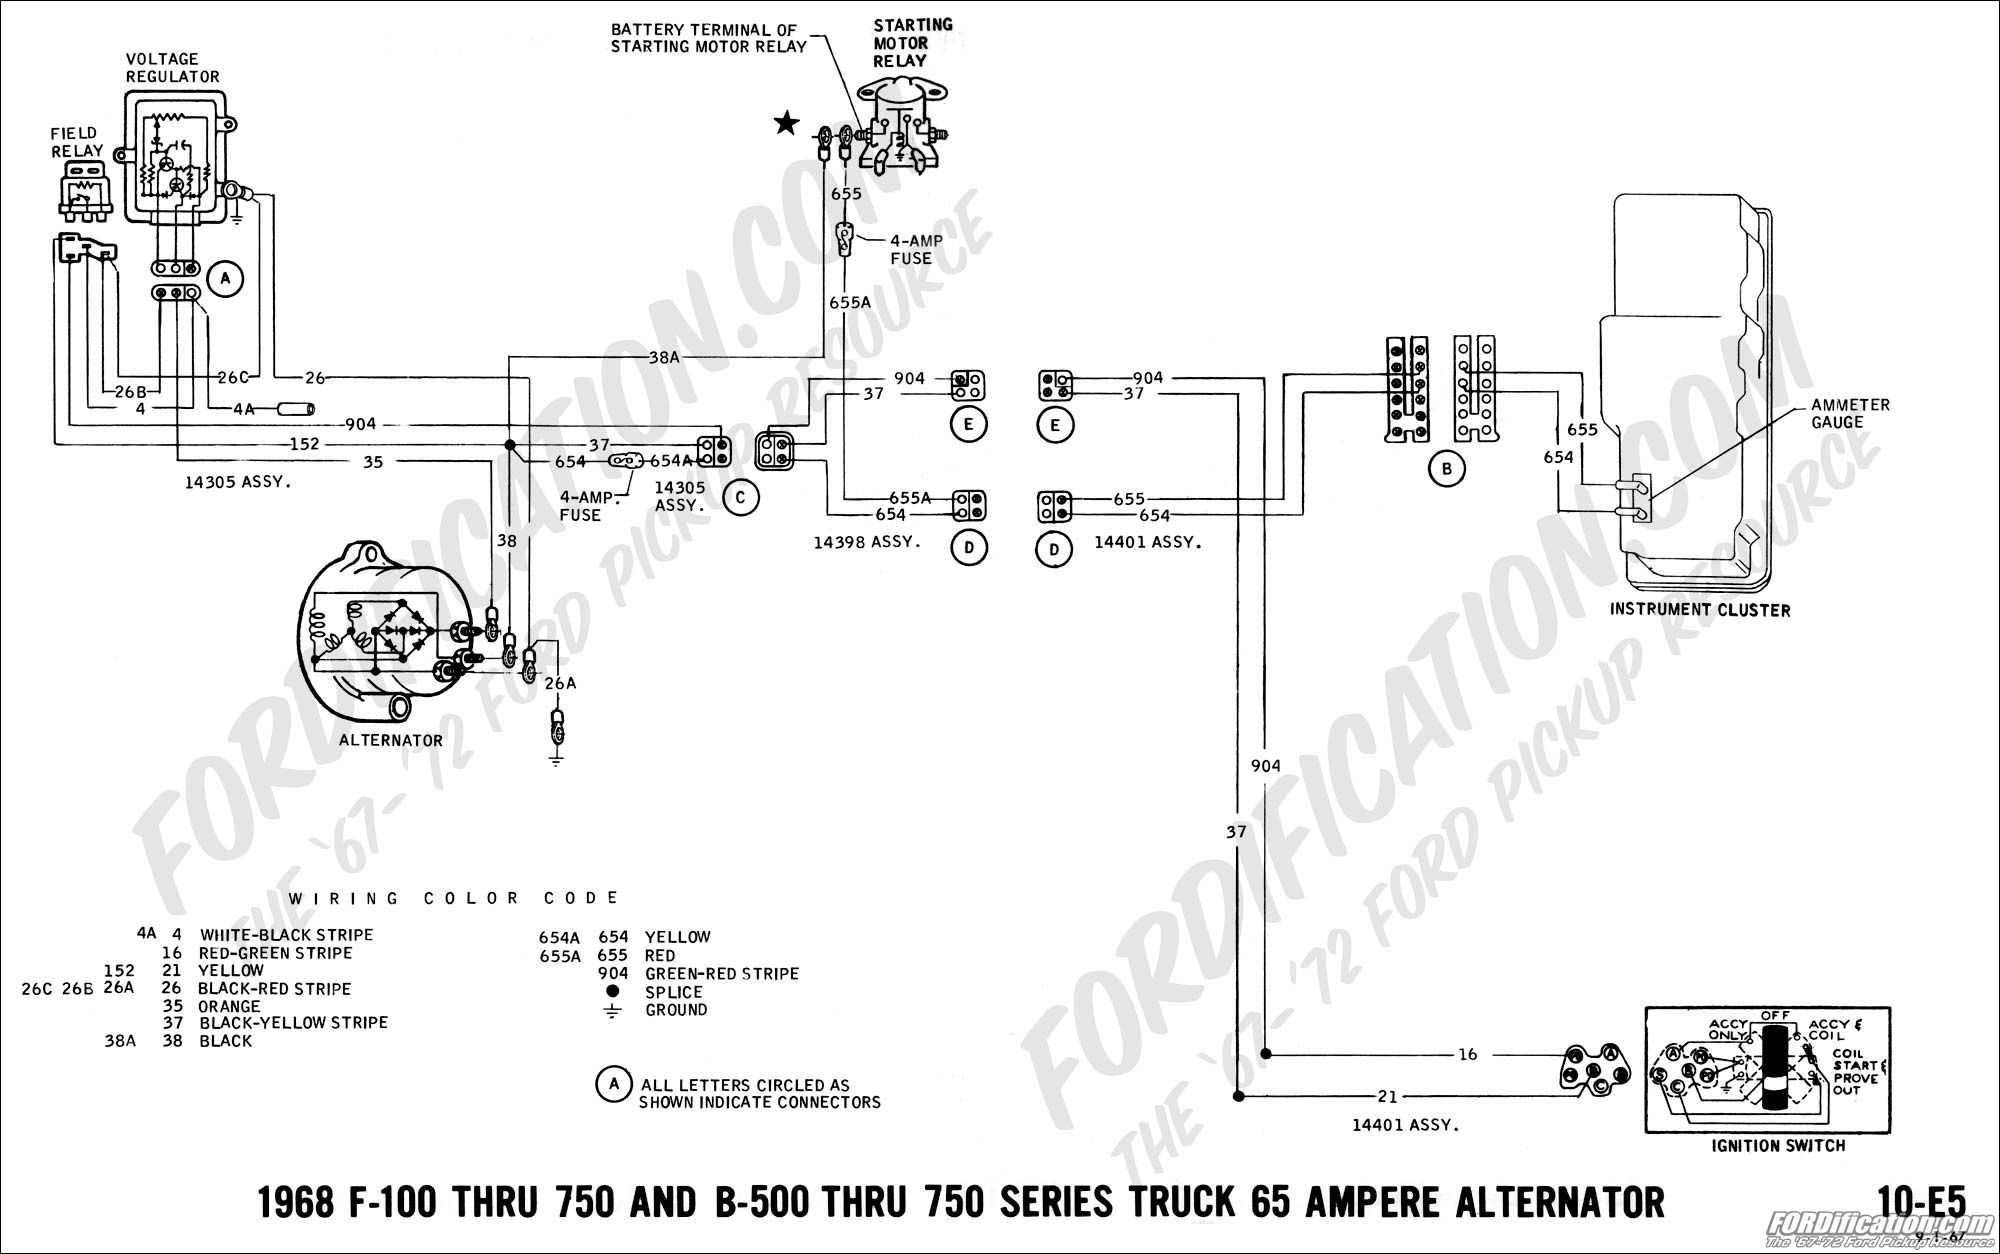 alternator wiring diagram 68 f100